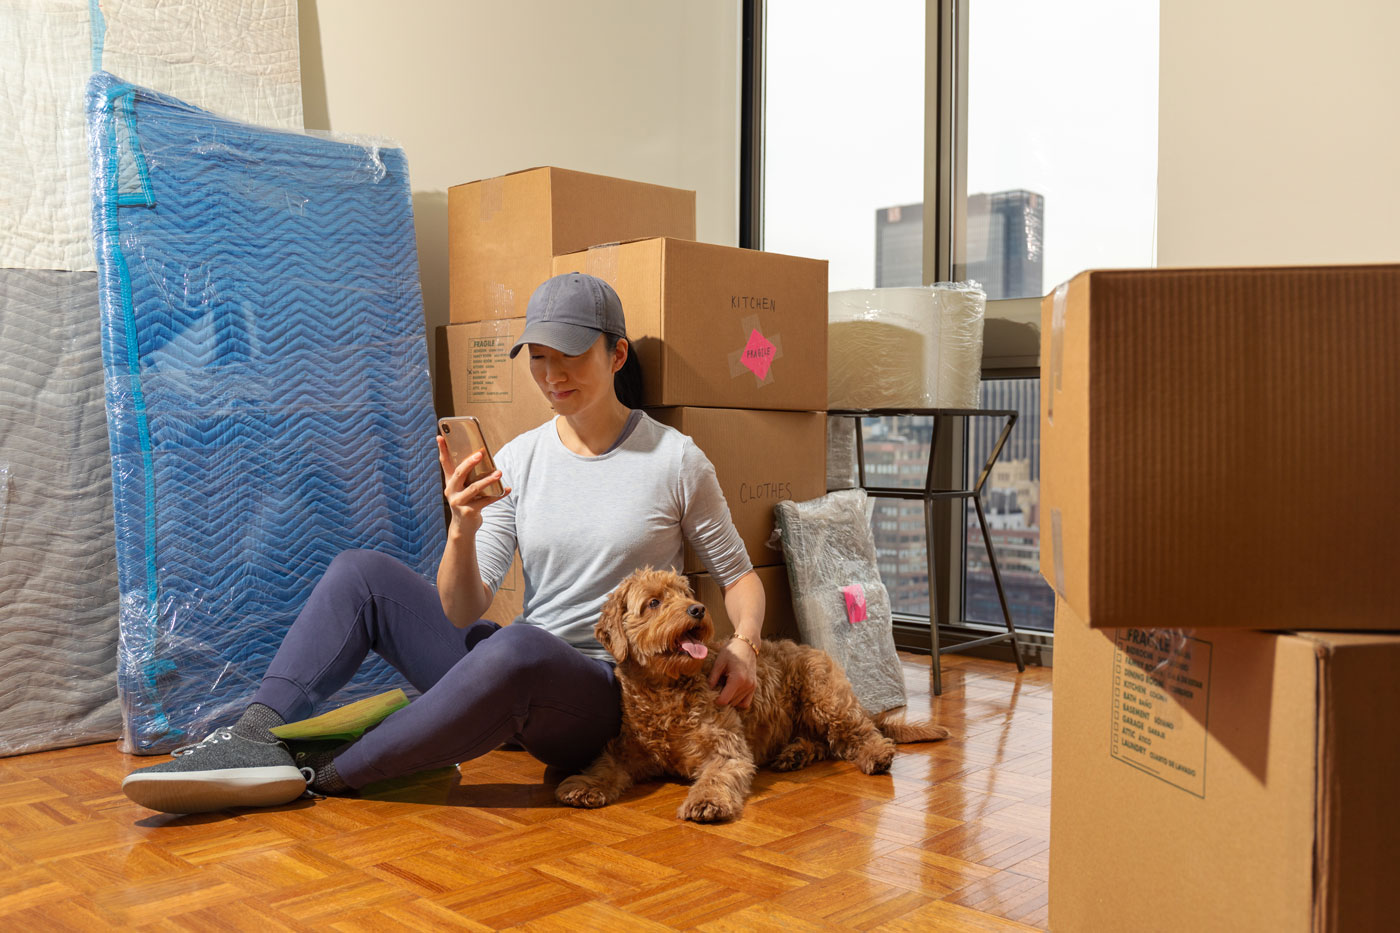 Woman is moving and looking for a self storage